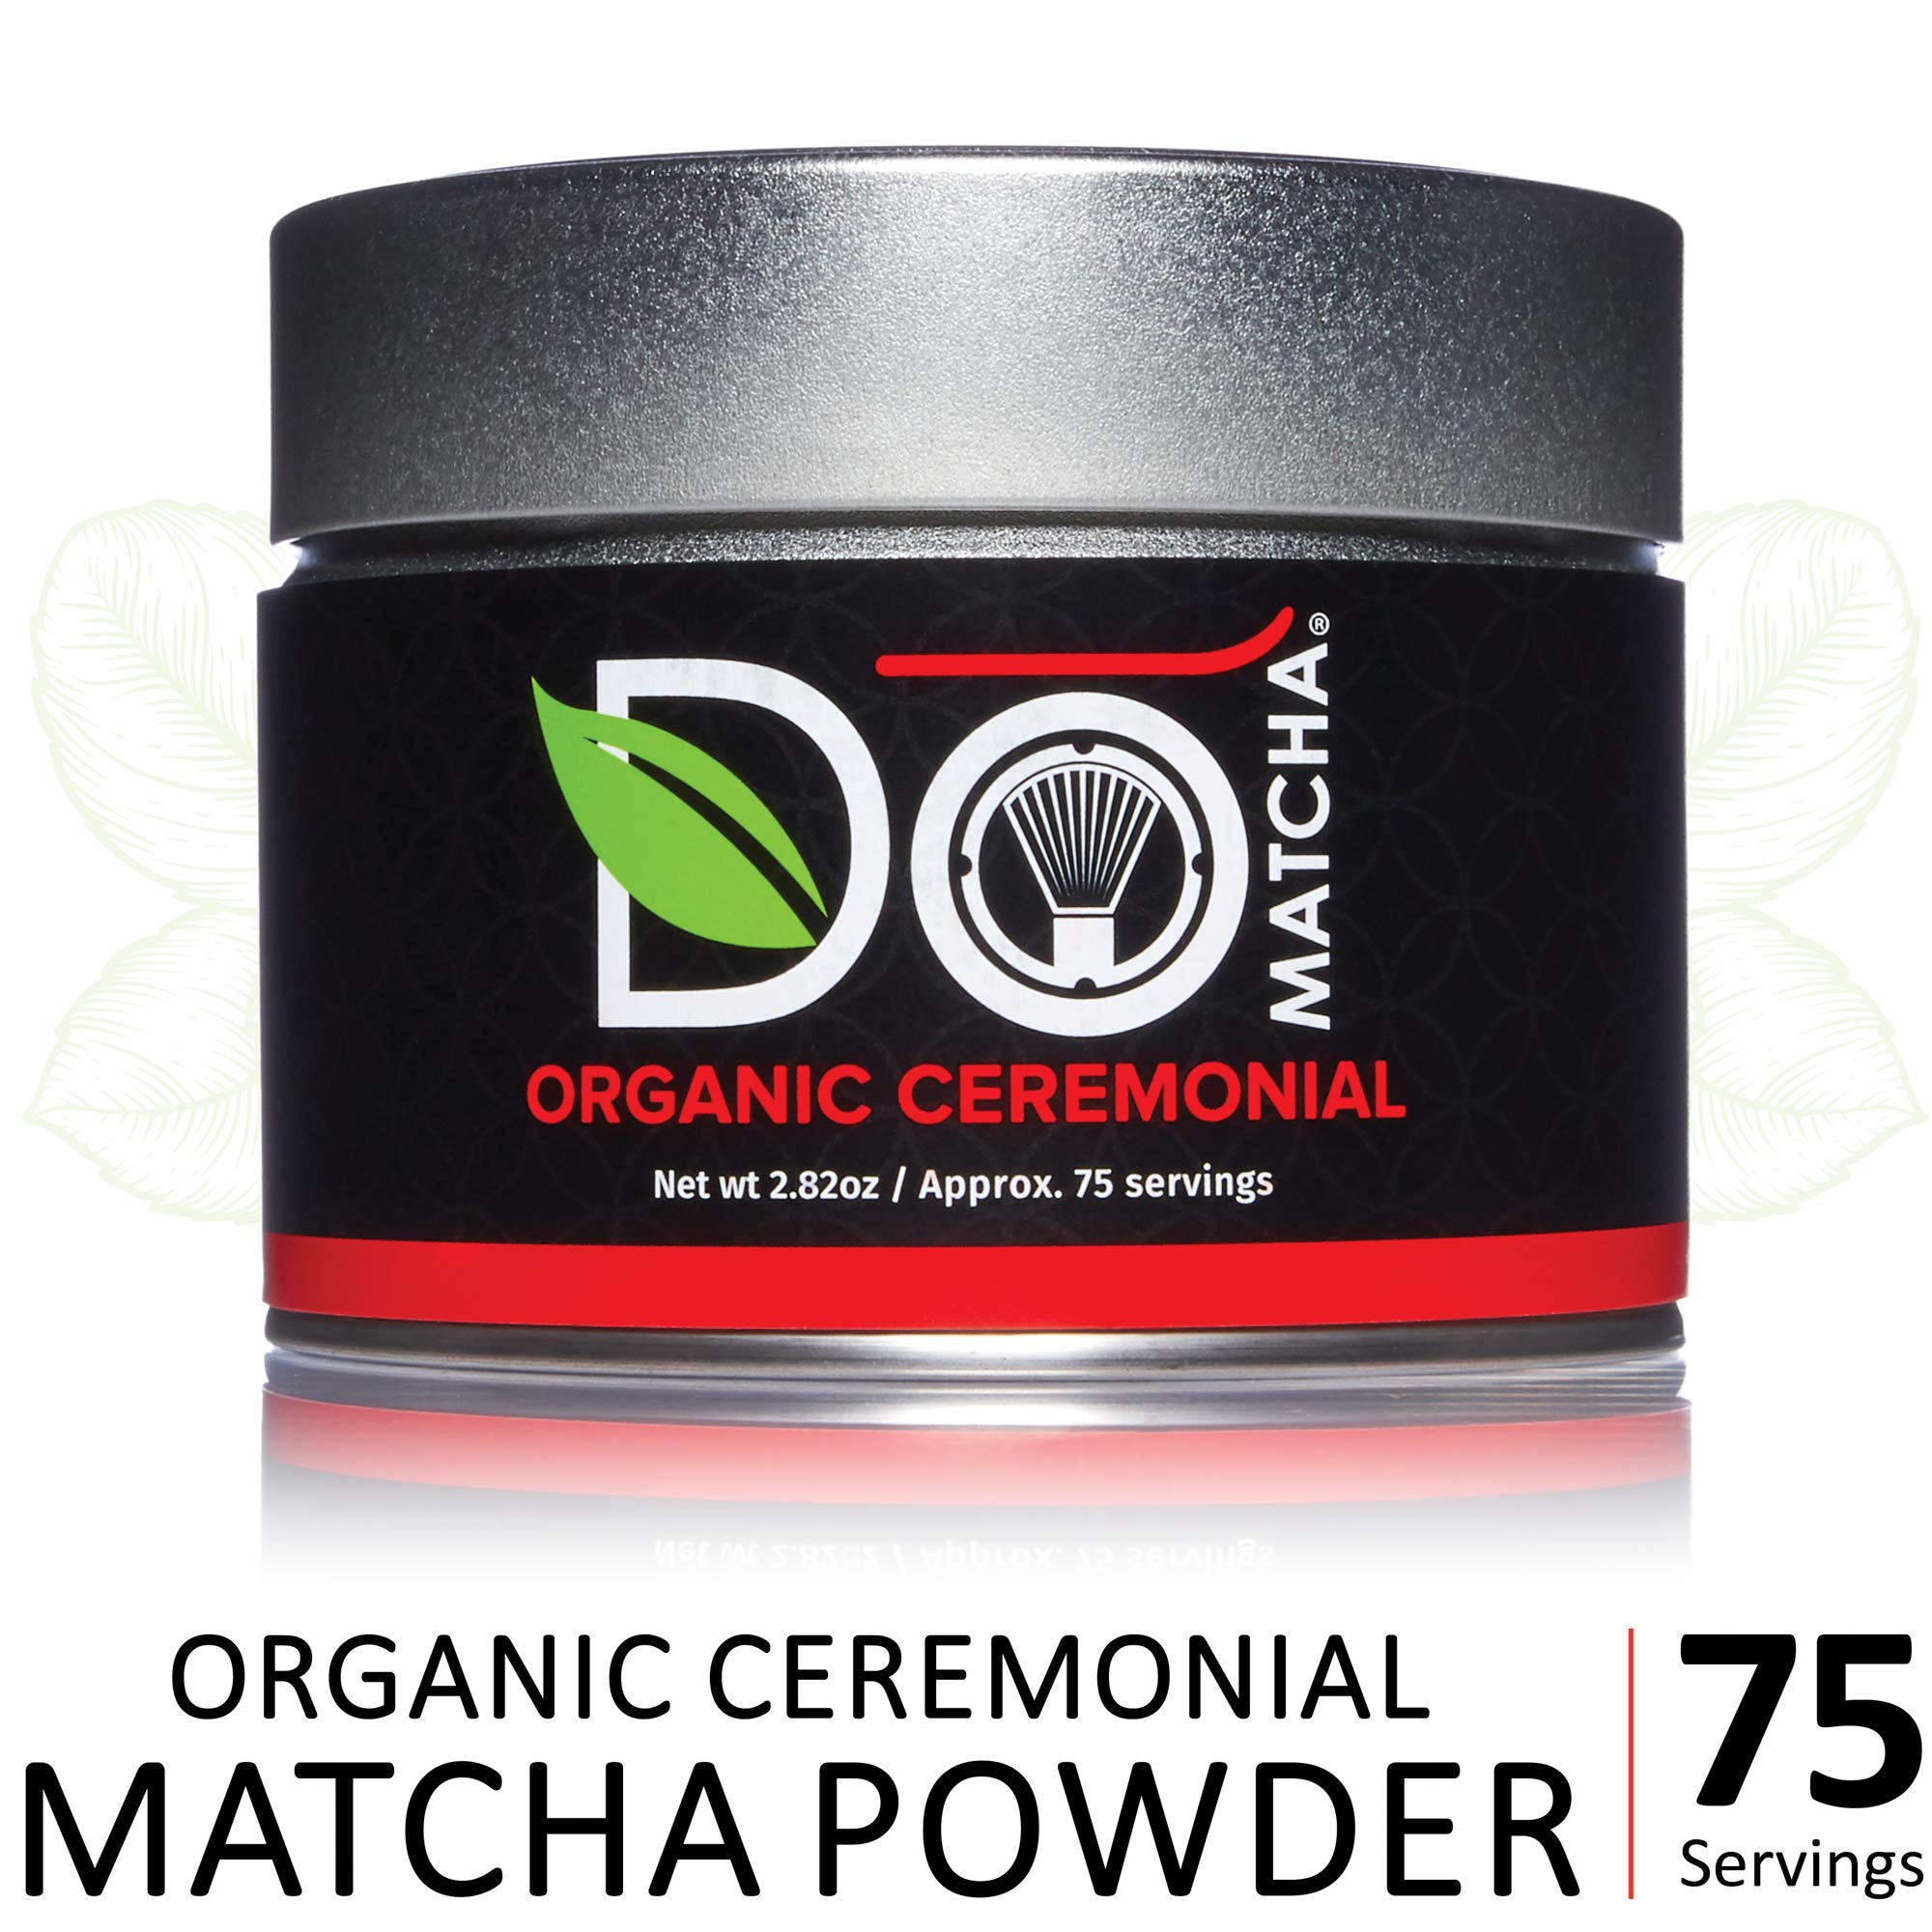 DoMatcha - Organic Ceremonial Green Tea Matcha Powder, Natural Source of Antioxidants, Caffeine, and L-Theanine, Promotes Focus and Relaxation, 75 Servings (2.82 oz) by DoMatcha